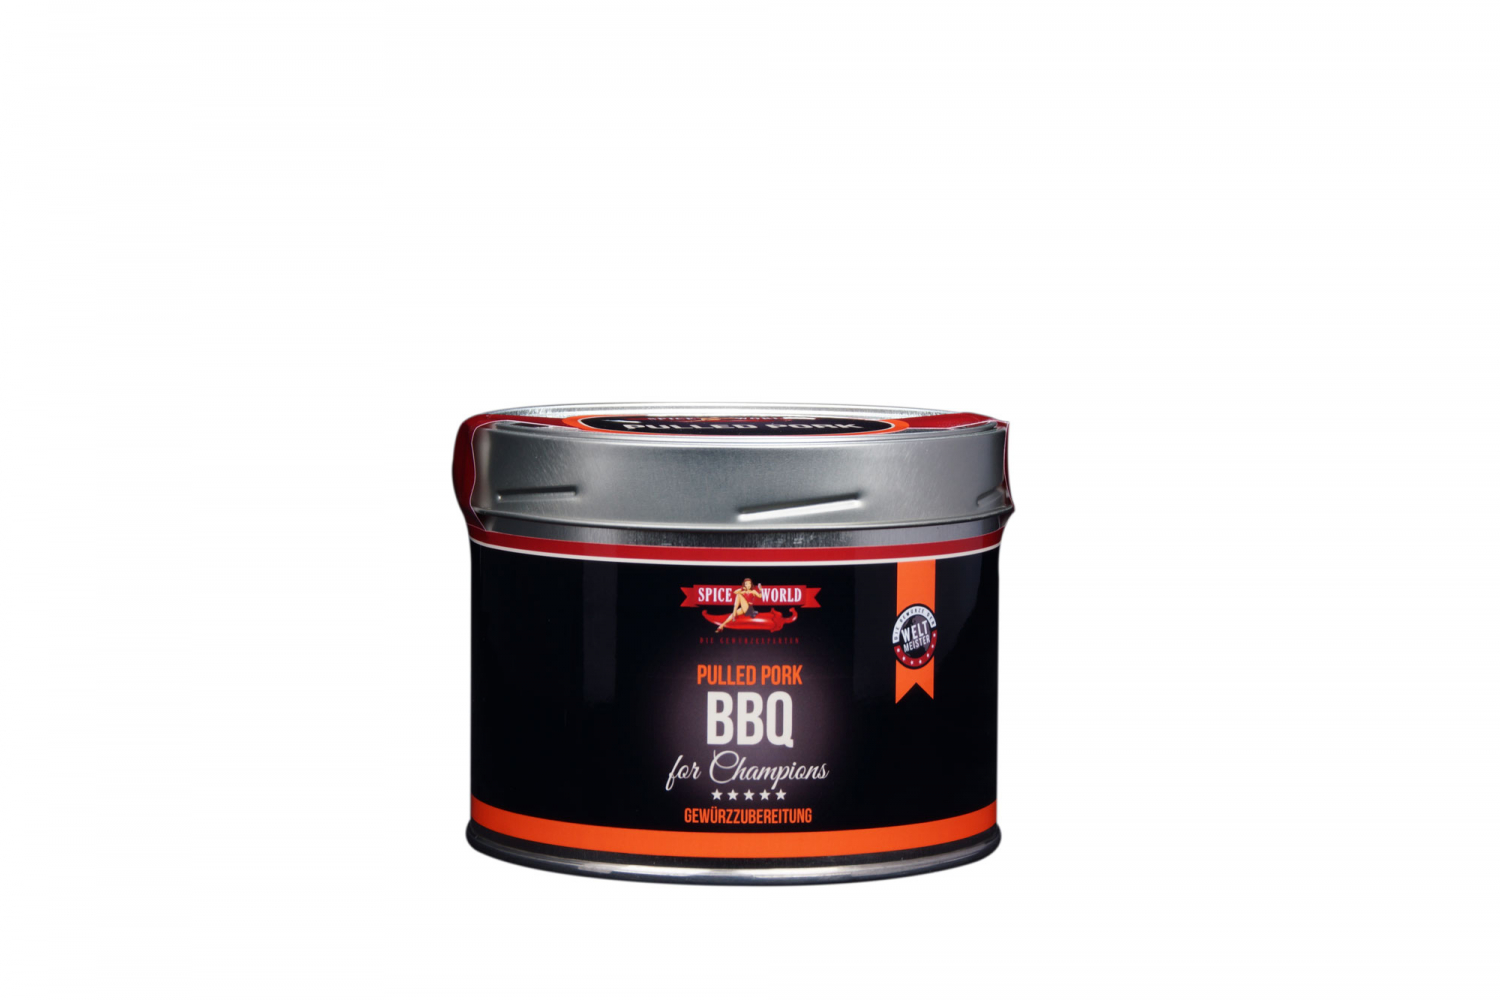 Barbecue-for-Champions - Pulled Pork BBQ Rub, 550ml Gastro-Dose 550ml Gastro-Dose